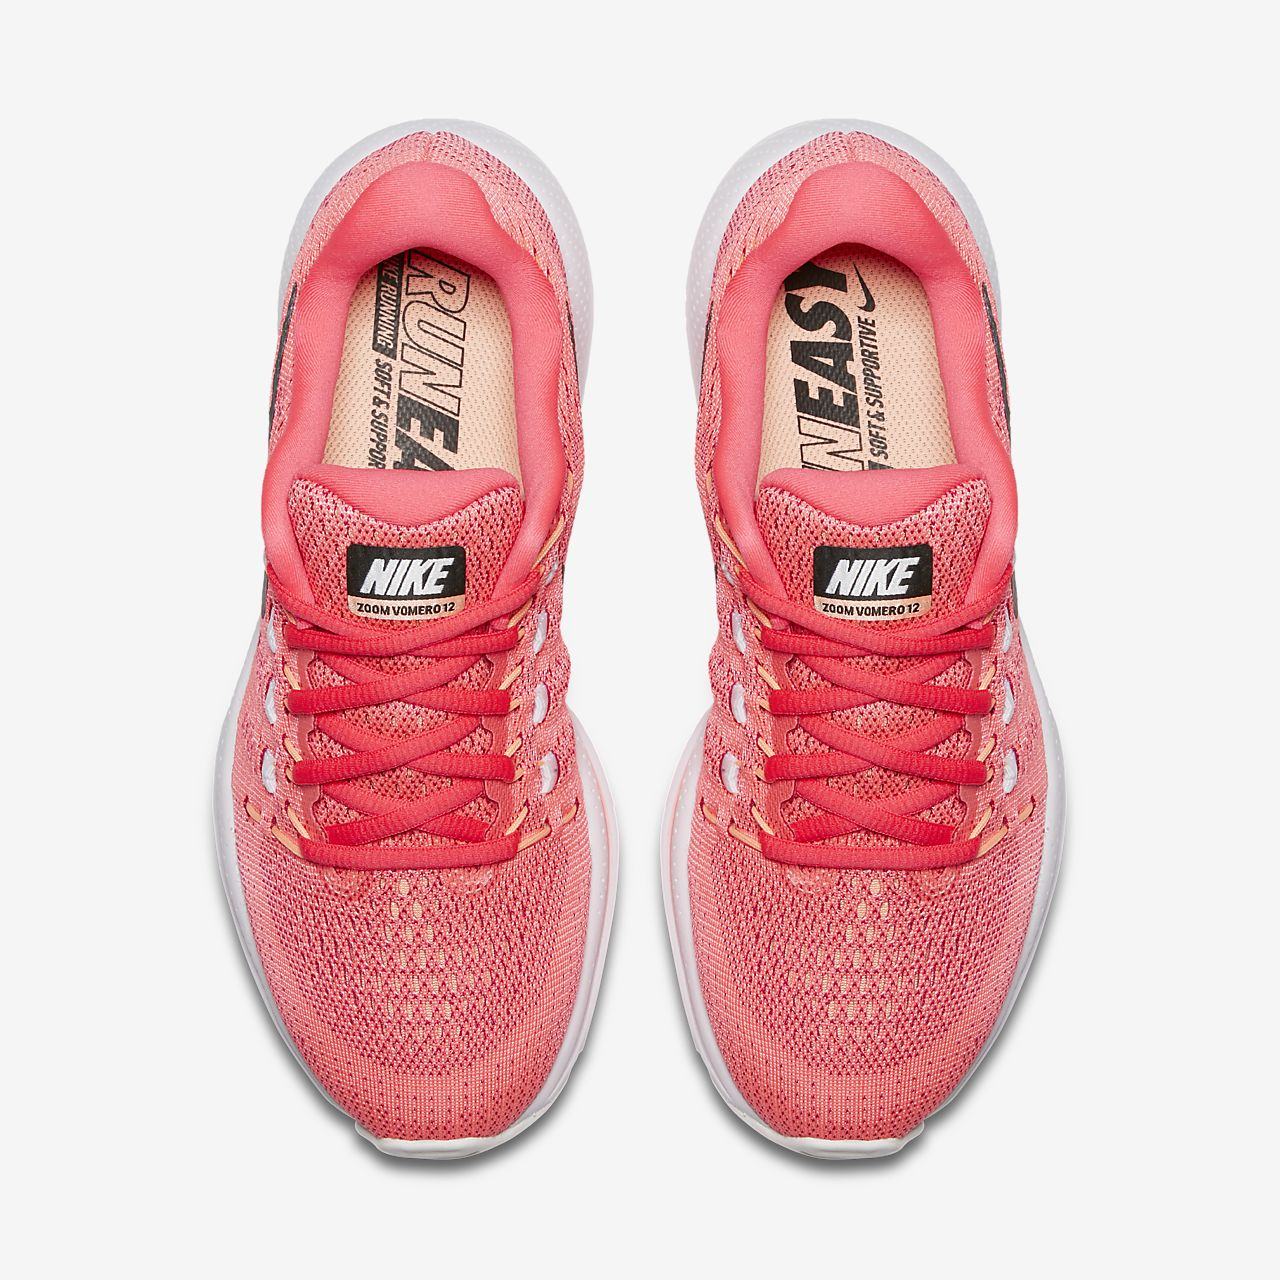 ... Nike Air Zoom Vomero 12 Women's Running Shoe